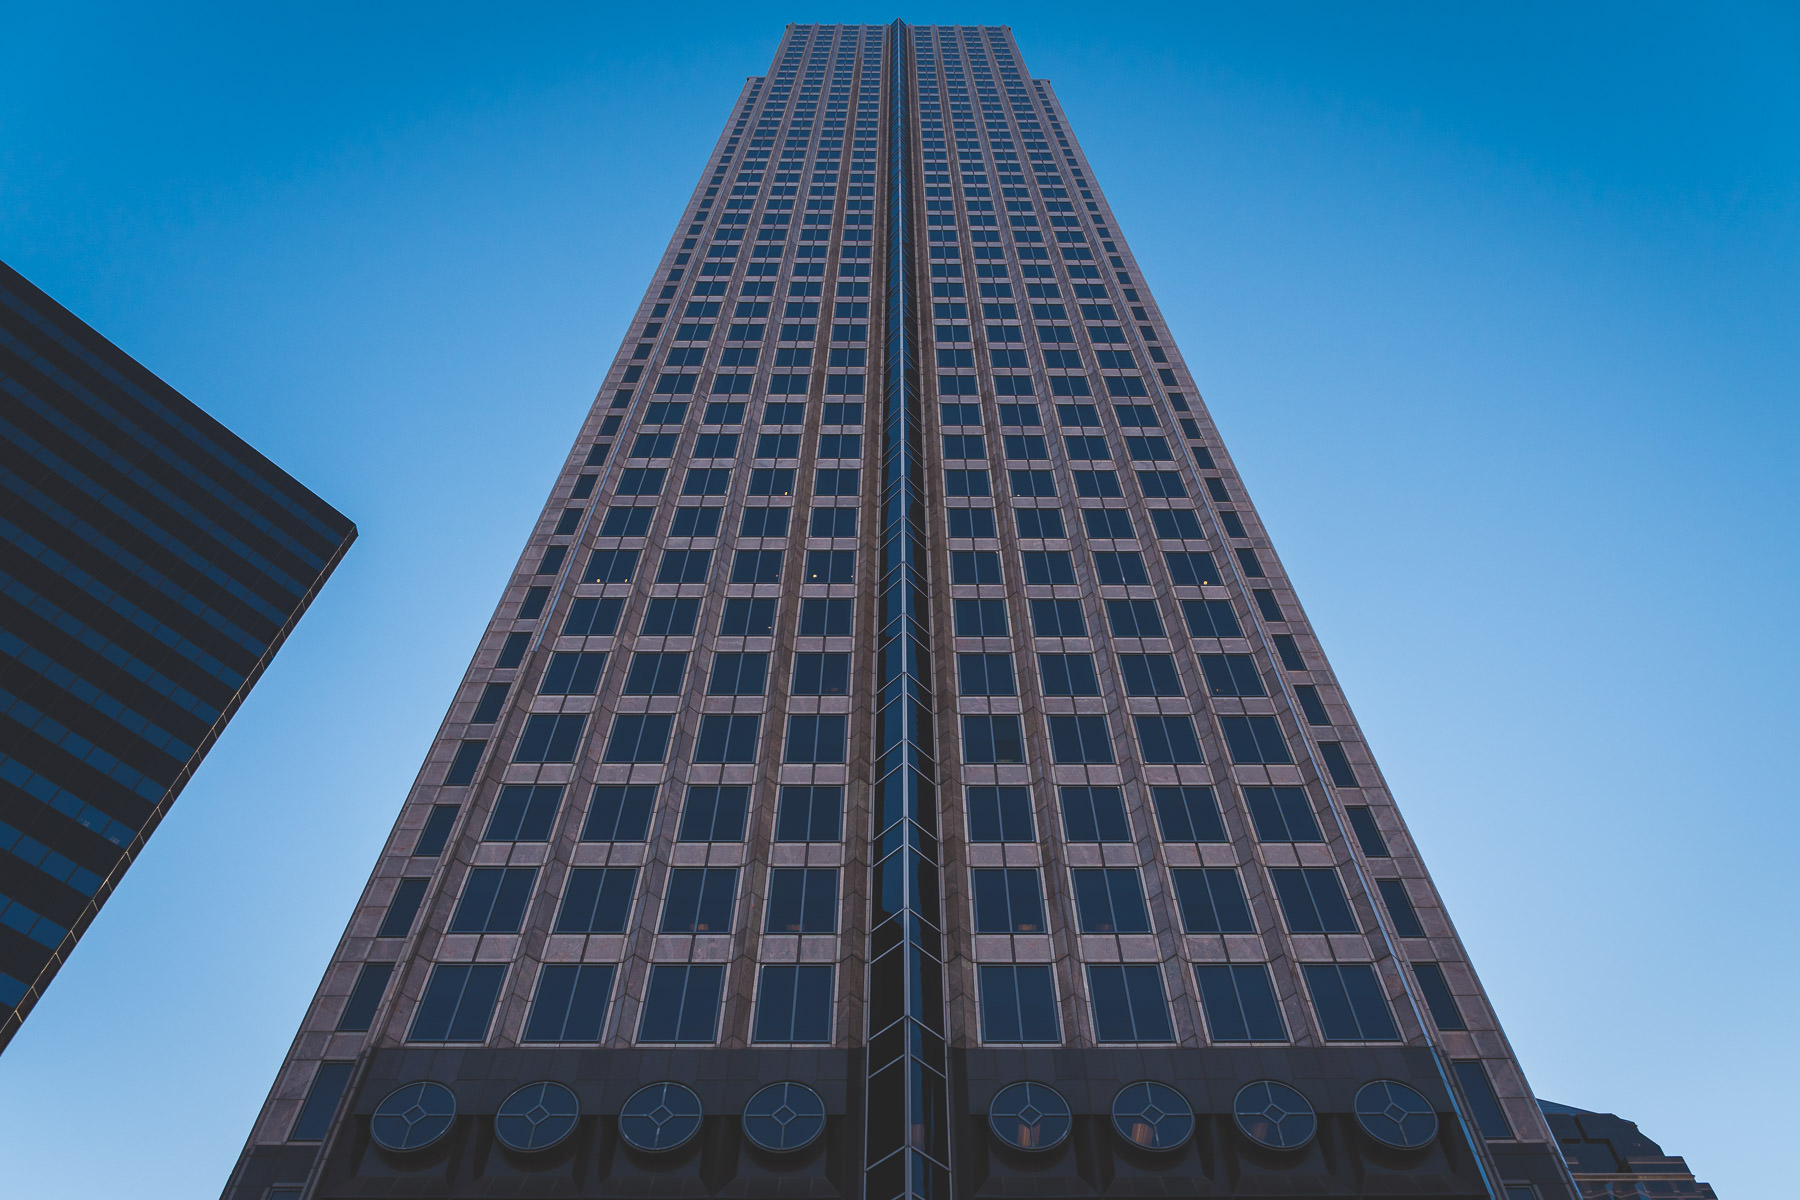 Chase Tower rises 738 feet into the sky over Downtown Dallas.